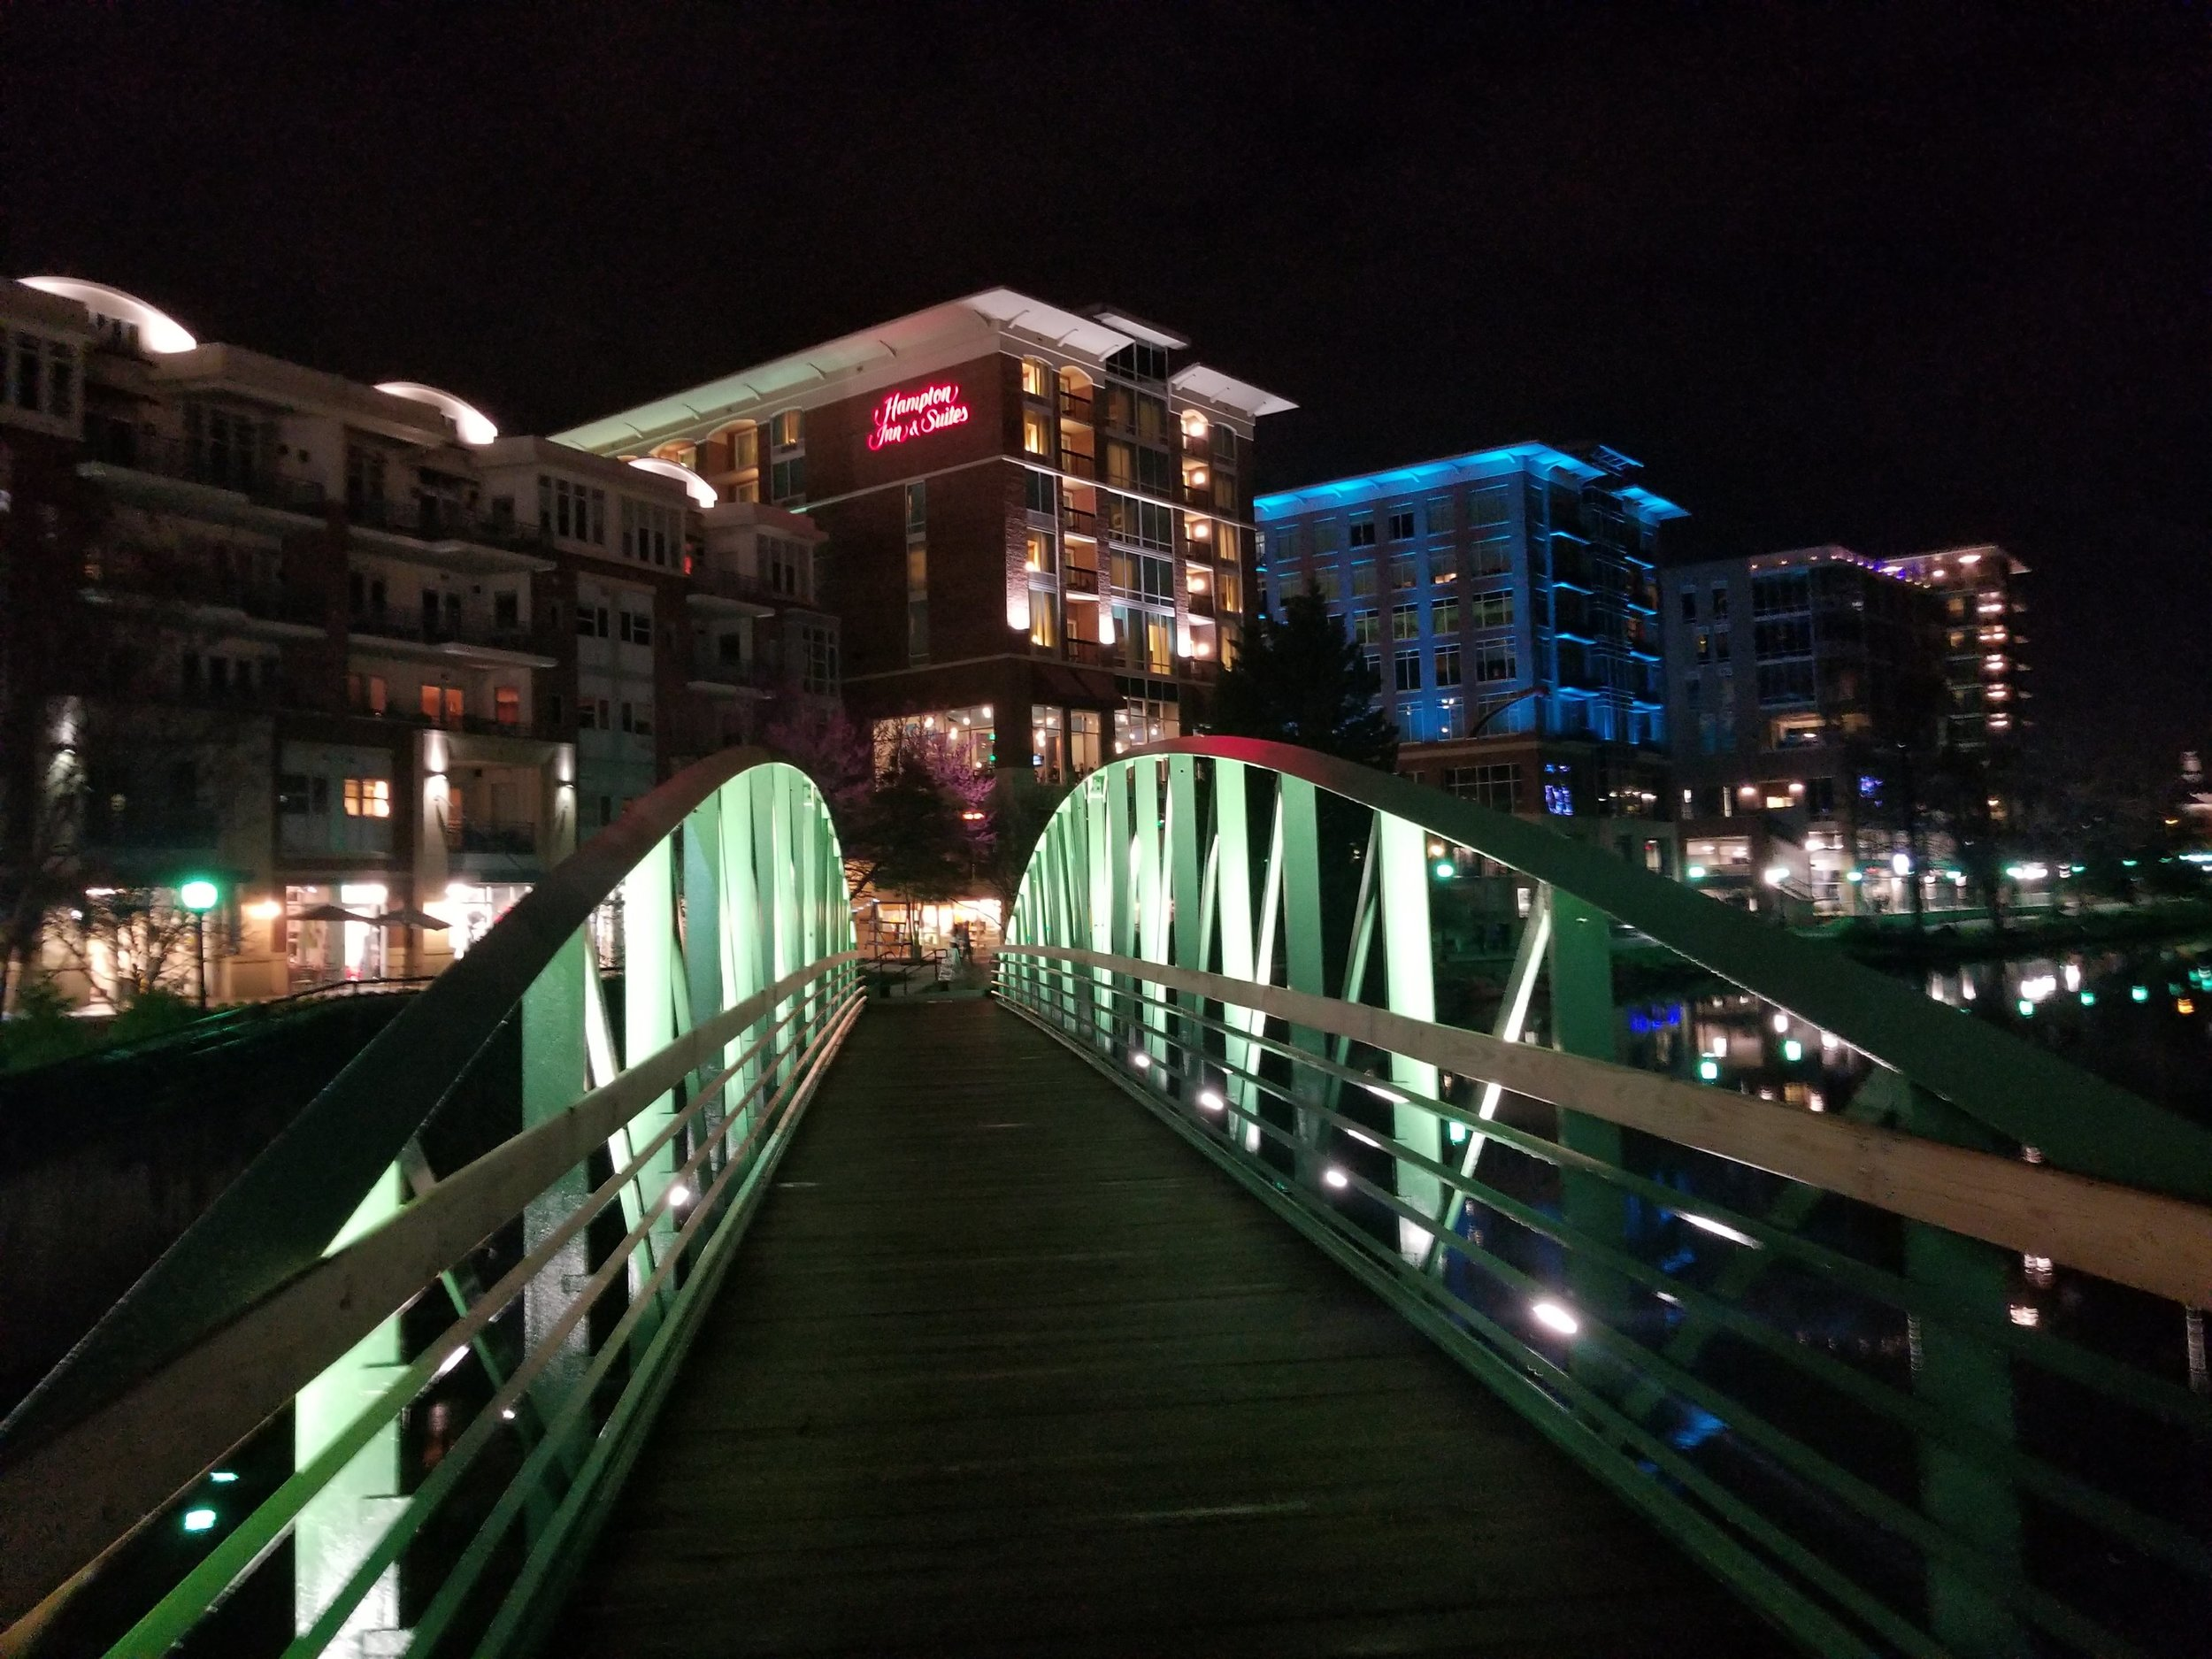 Walking across the Reedy River on the pedestrian bridge back to the Hampton Inn & Suites